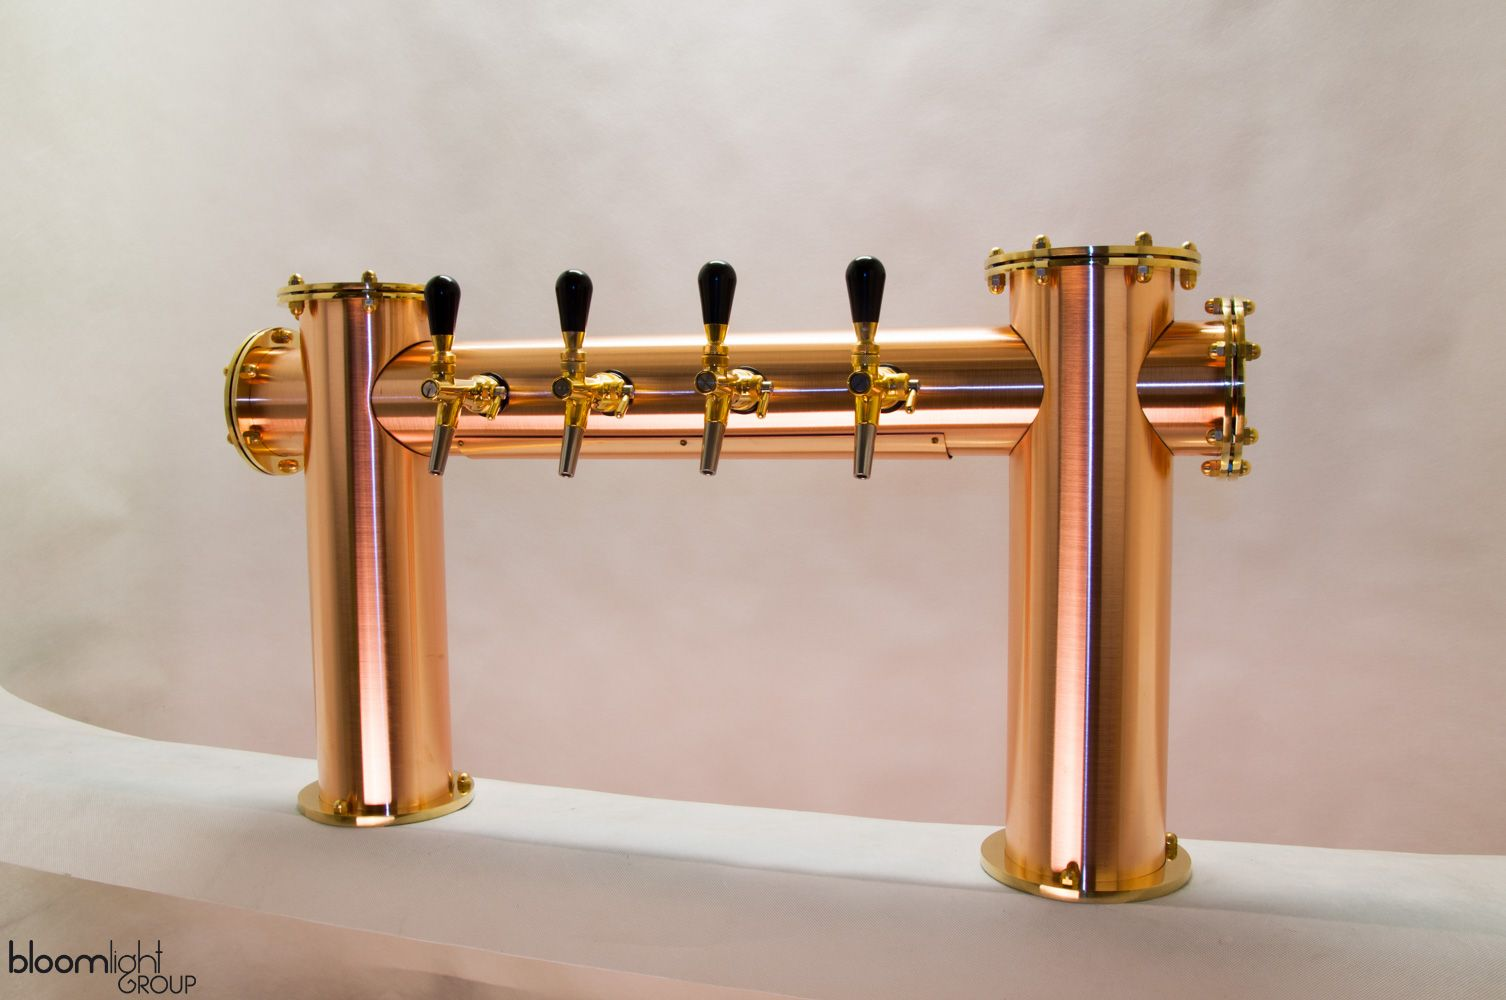 Brushed Copper Beer Tower With Brass Details Beer Tower Beer Taps Draft Beer Tower